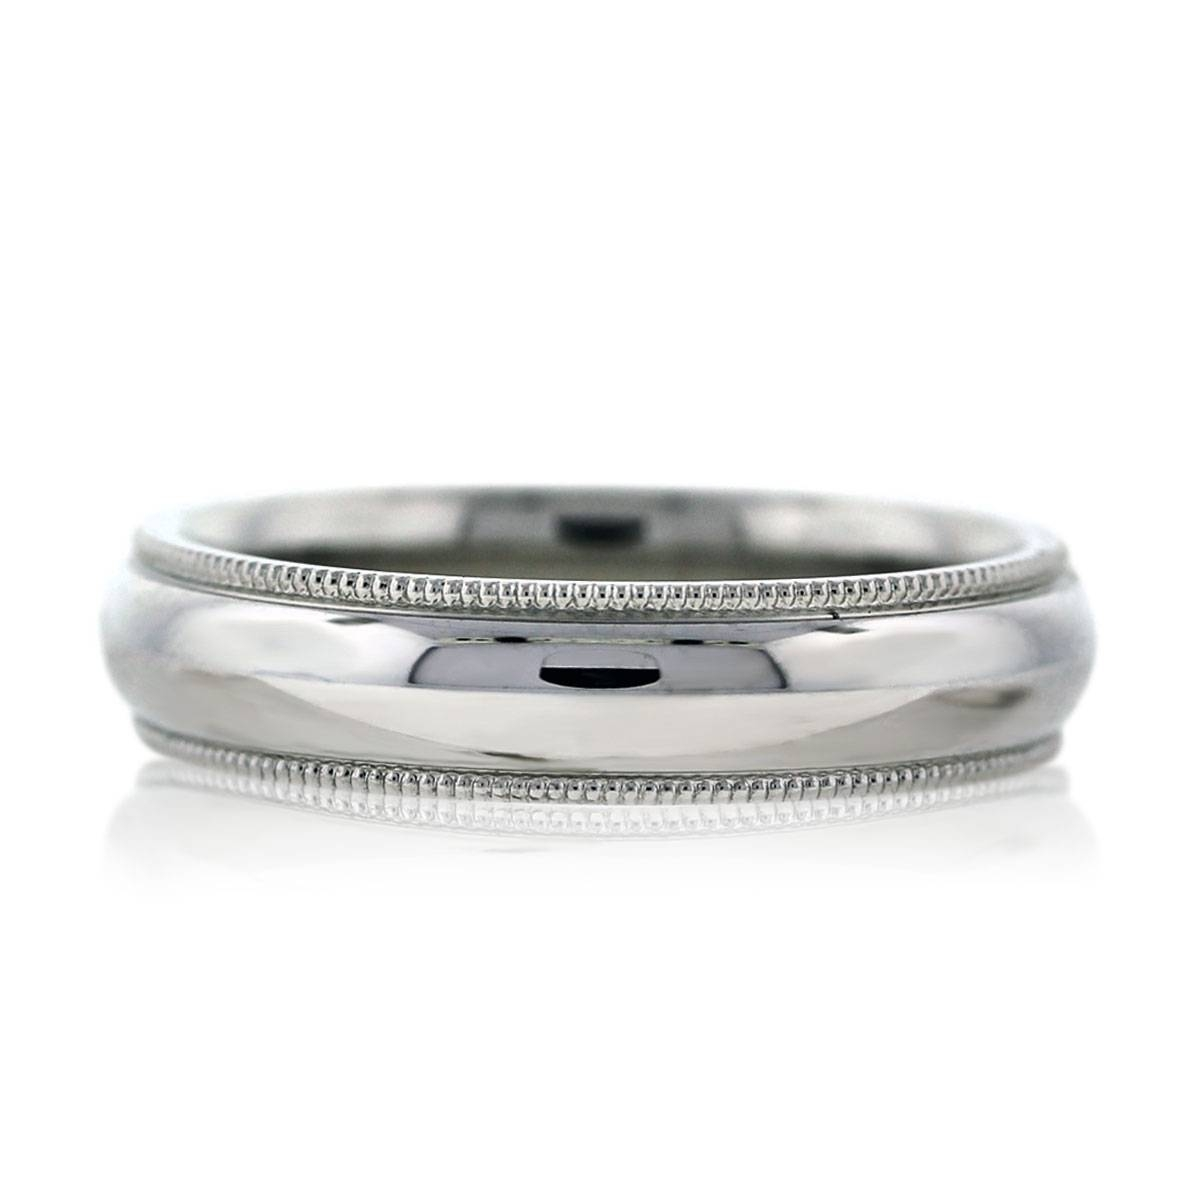 14K White Gold Milgrain Mens Wedding Band Ring Boca Raton Within Mens Milgrain Wedding Bands (View 2 of 15)